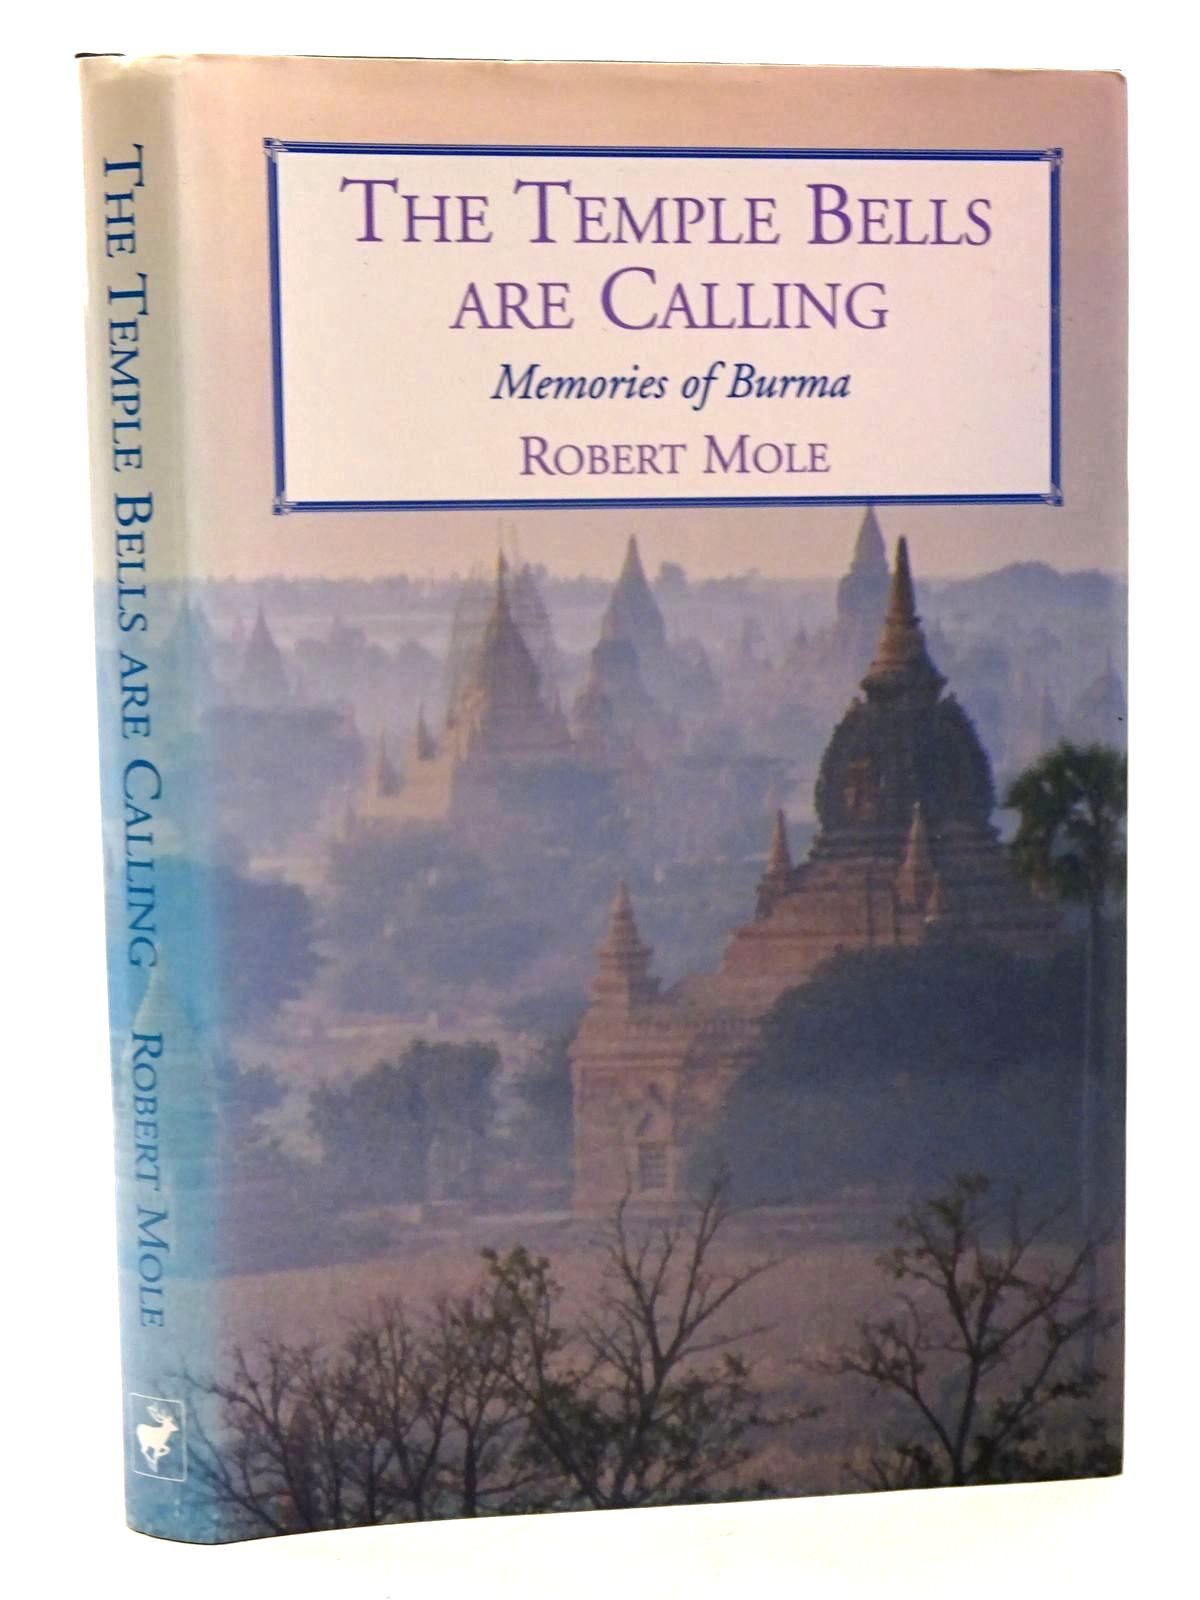 Photo of THE TEMPLE BELLS ARE CALLING written by Mole, Robert published by Pentland Books Ltd (STOCK CODE: 2125838)  for sale by Stella & Rose's Books